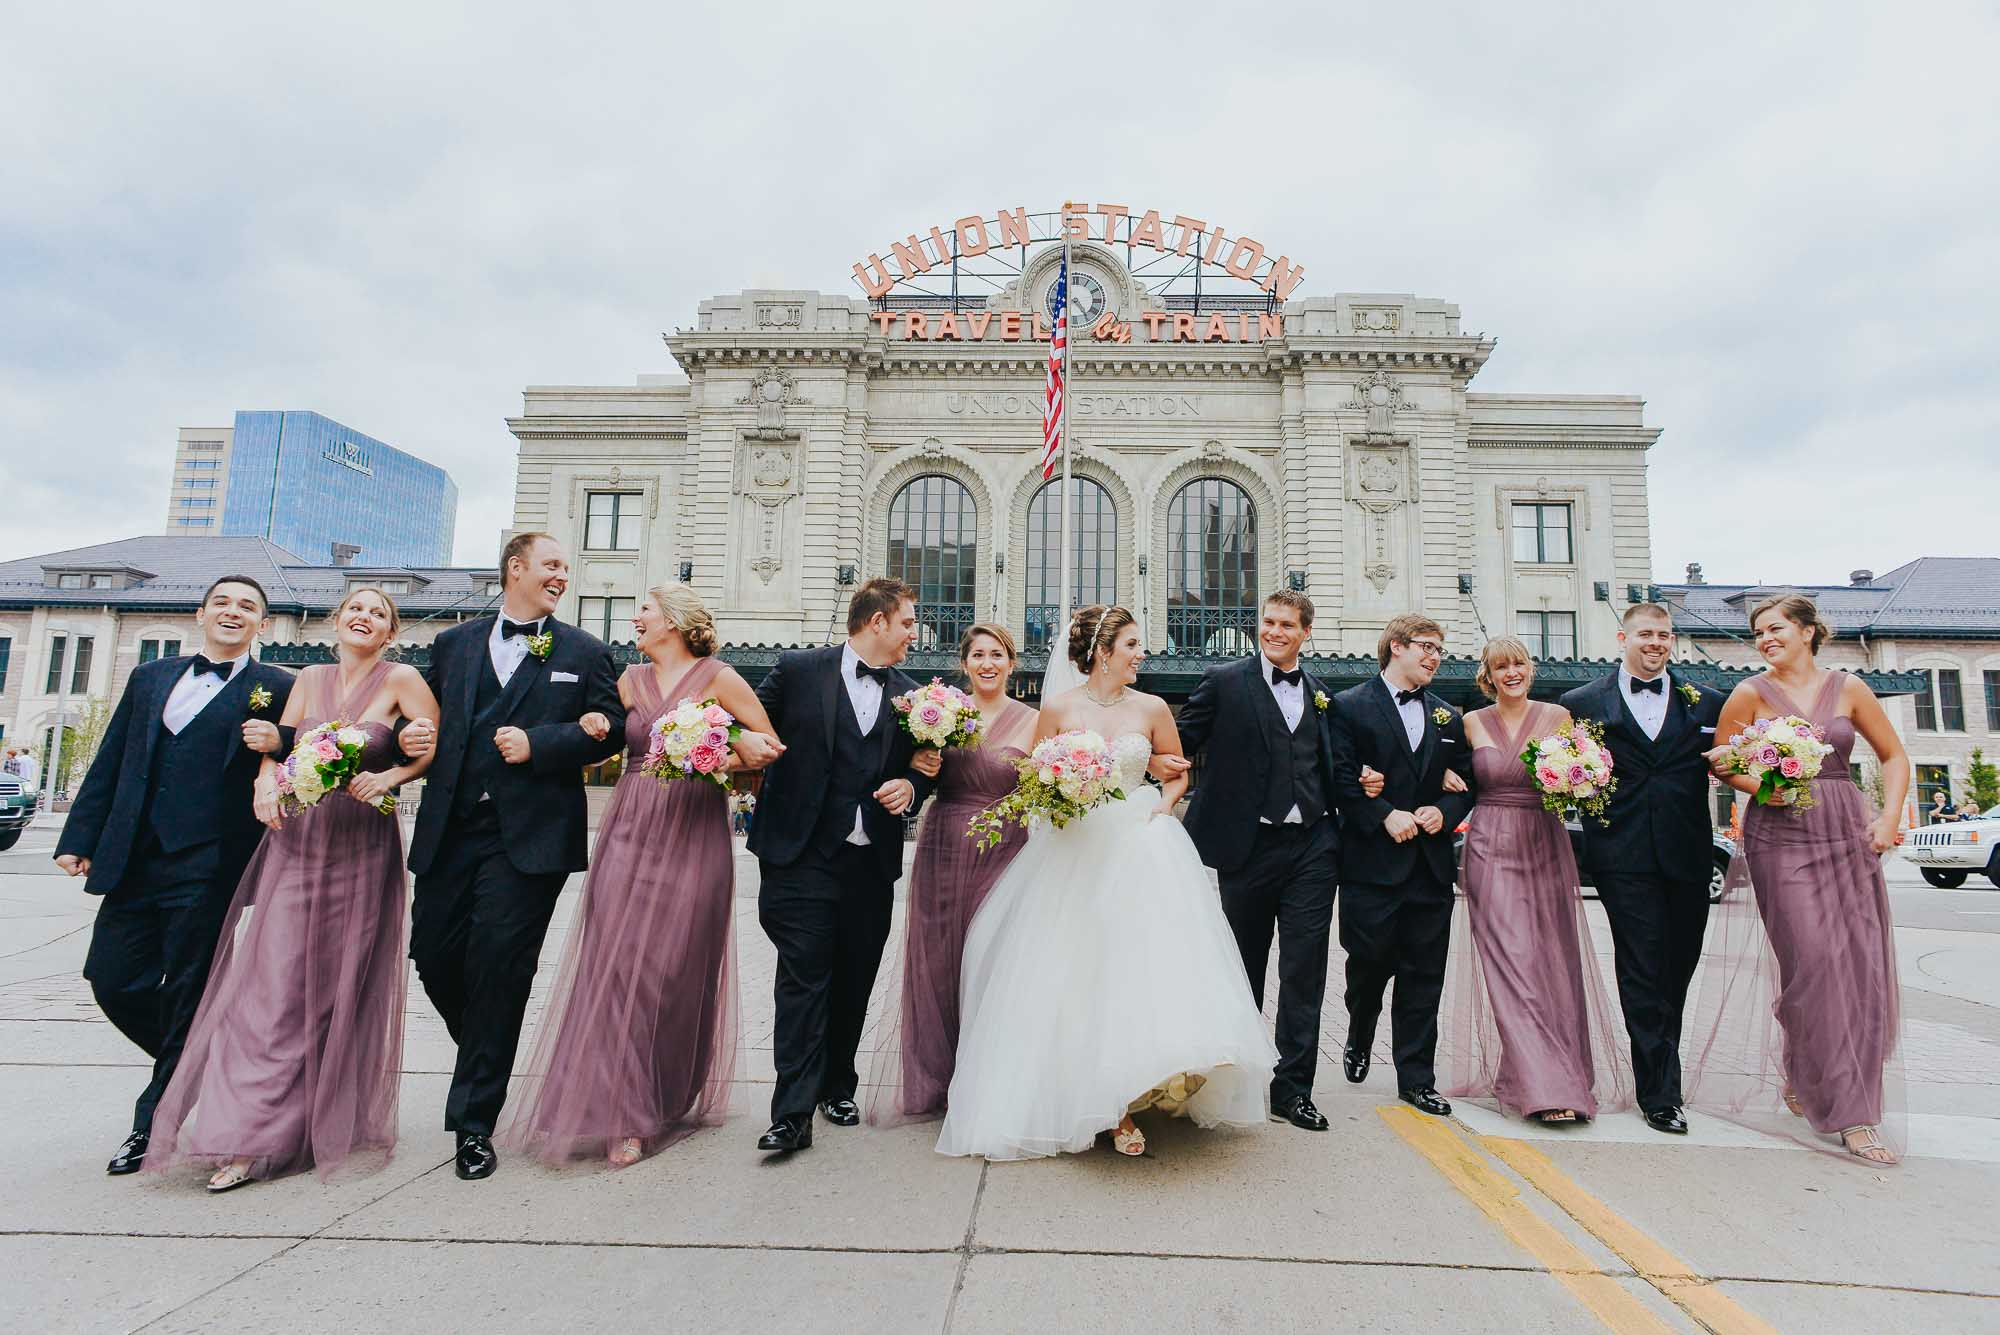 Bridal party at Denver's Union Station